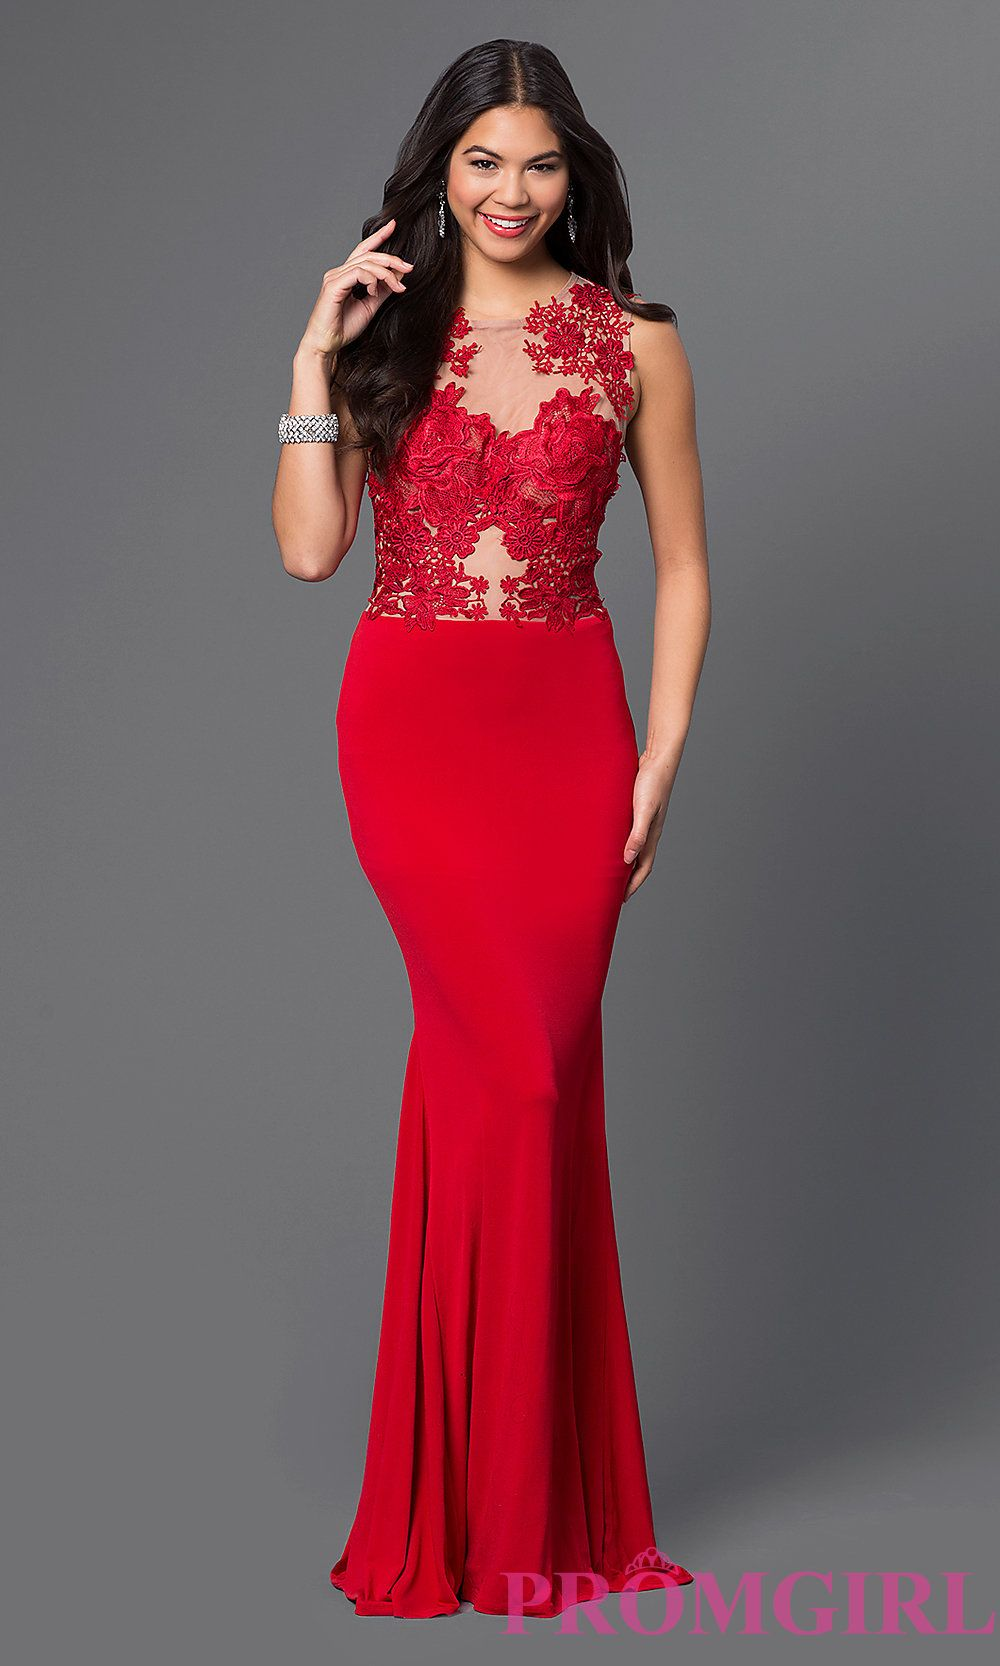 Sleeveless Evening Gown with Lace Bodice CQ-3661DK | Red-y for ...